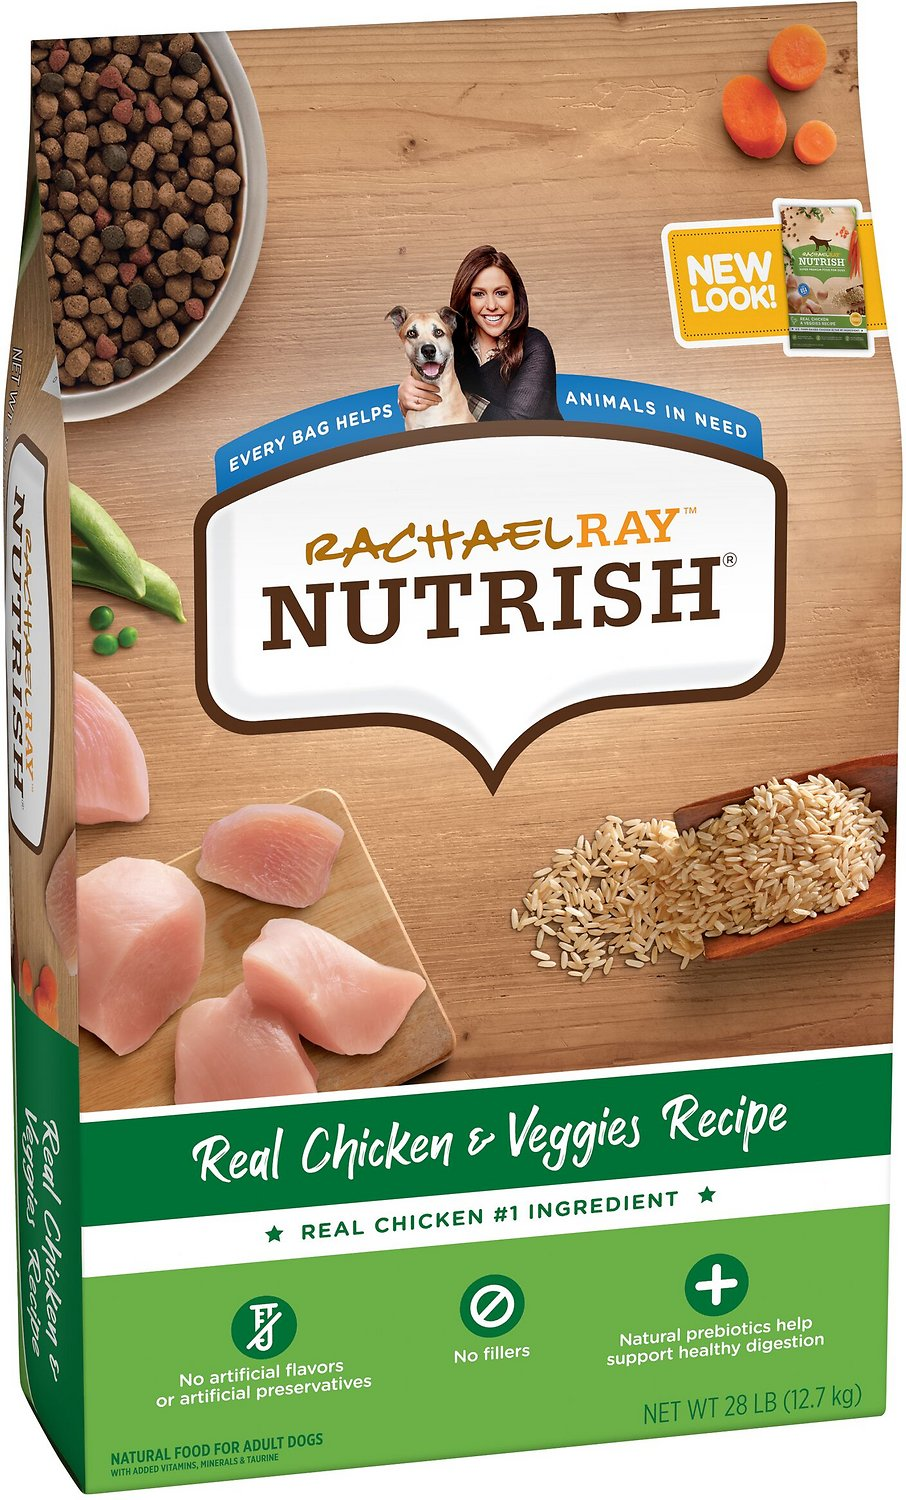 Rachael Ray Nutrish Chicken Dog Food Reviews